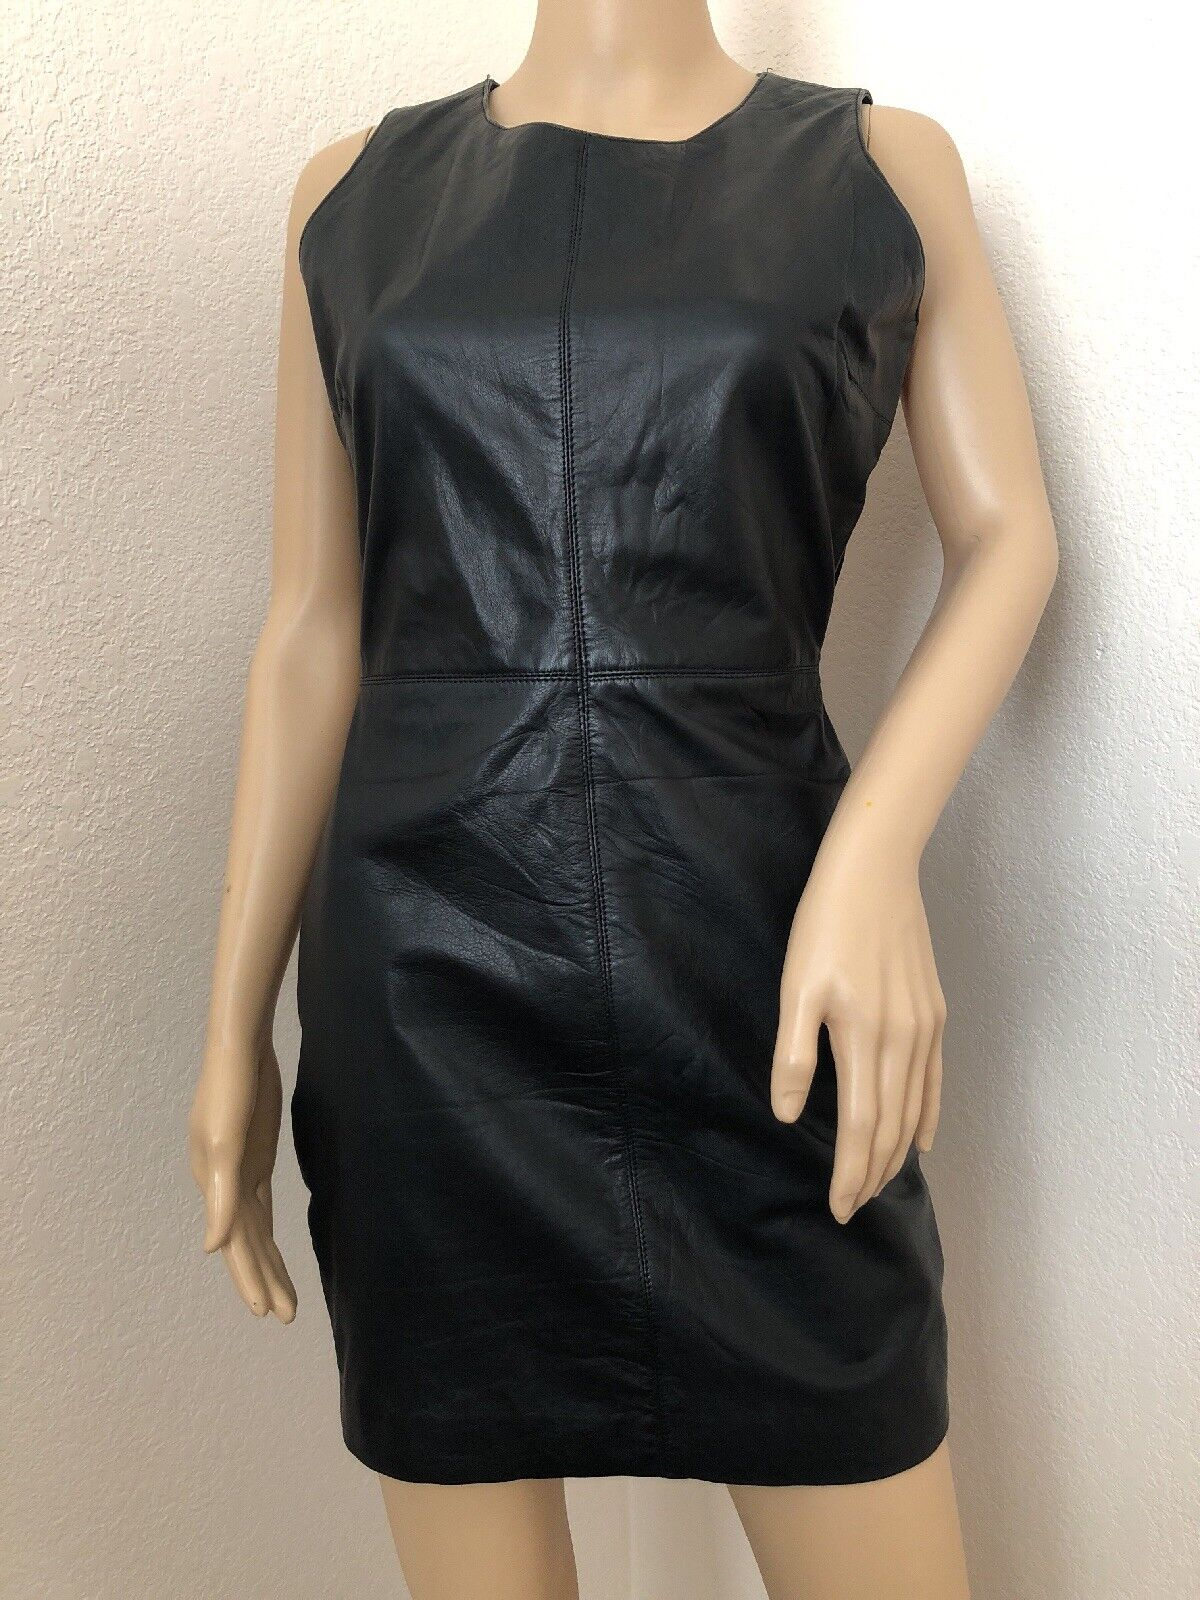 Capuletschwarz Leather Tank Mini DressS CURRENT SEASON